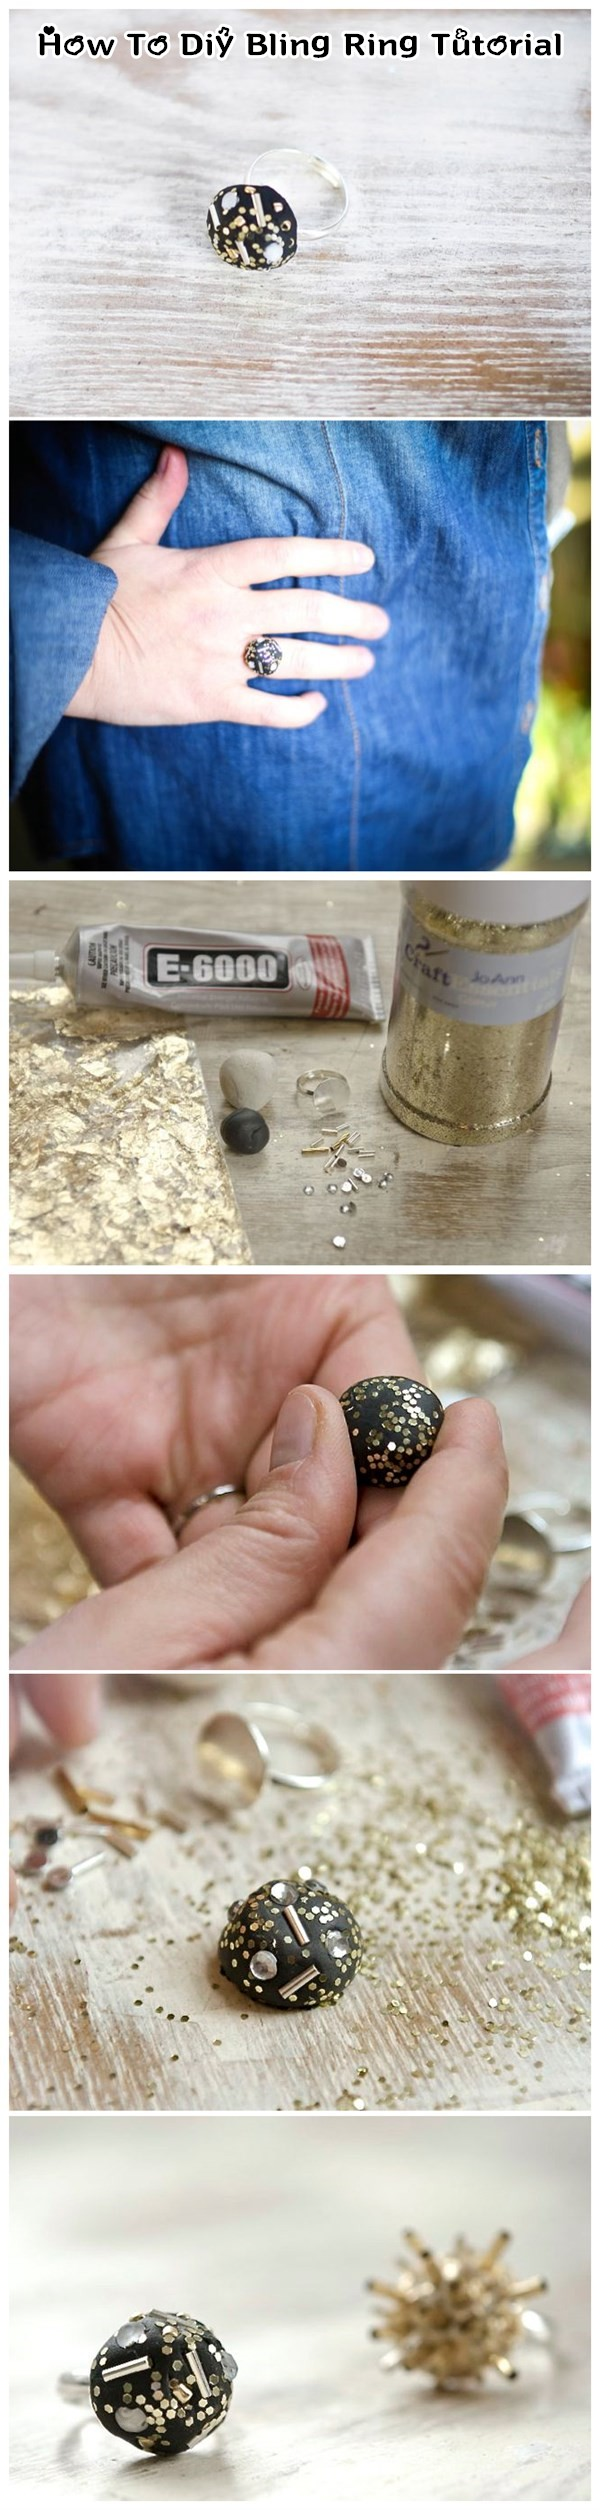 How To Diy Bling Ring Tutorial